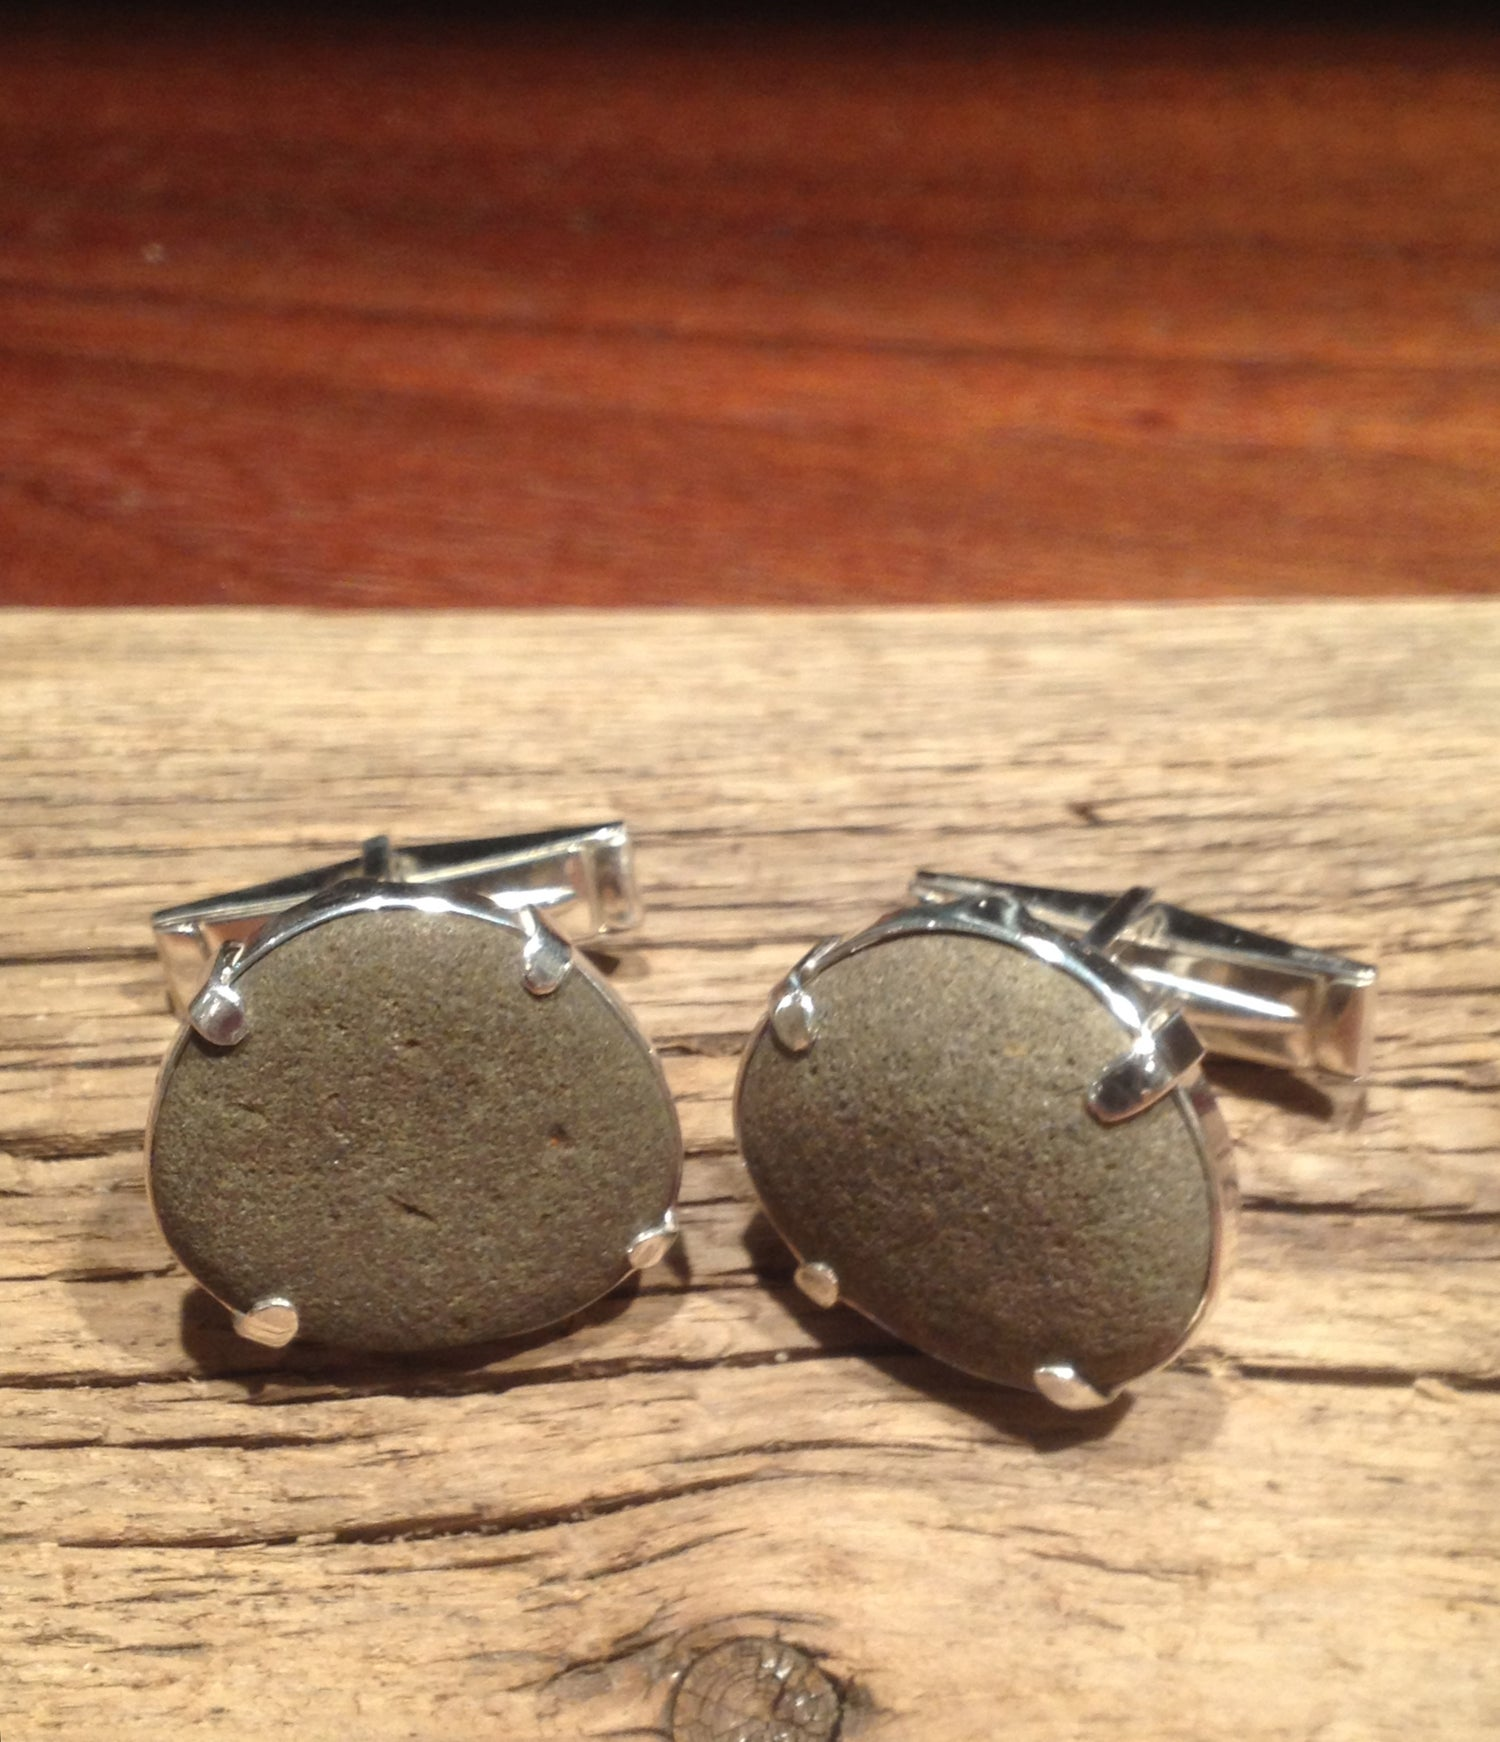 Image of Hudson River beach rock cufflinks